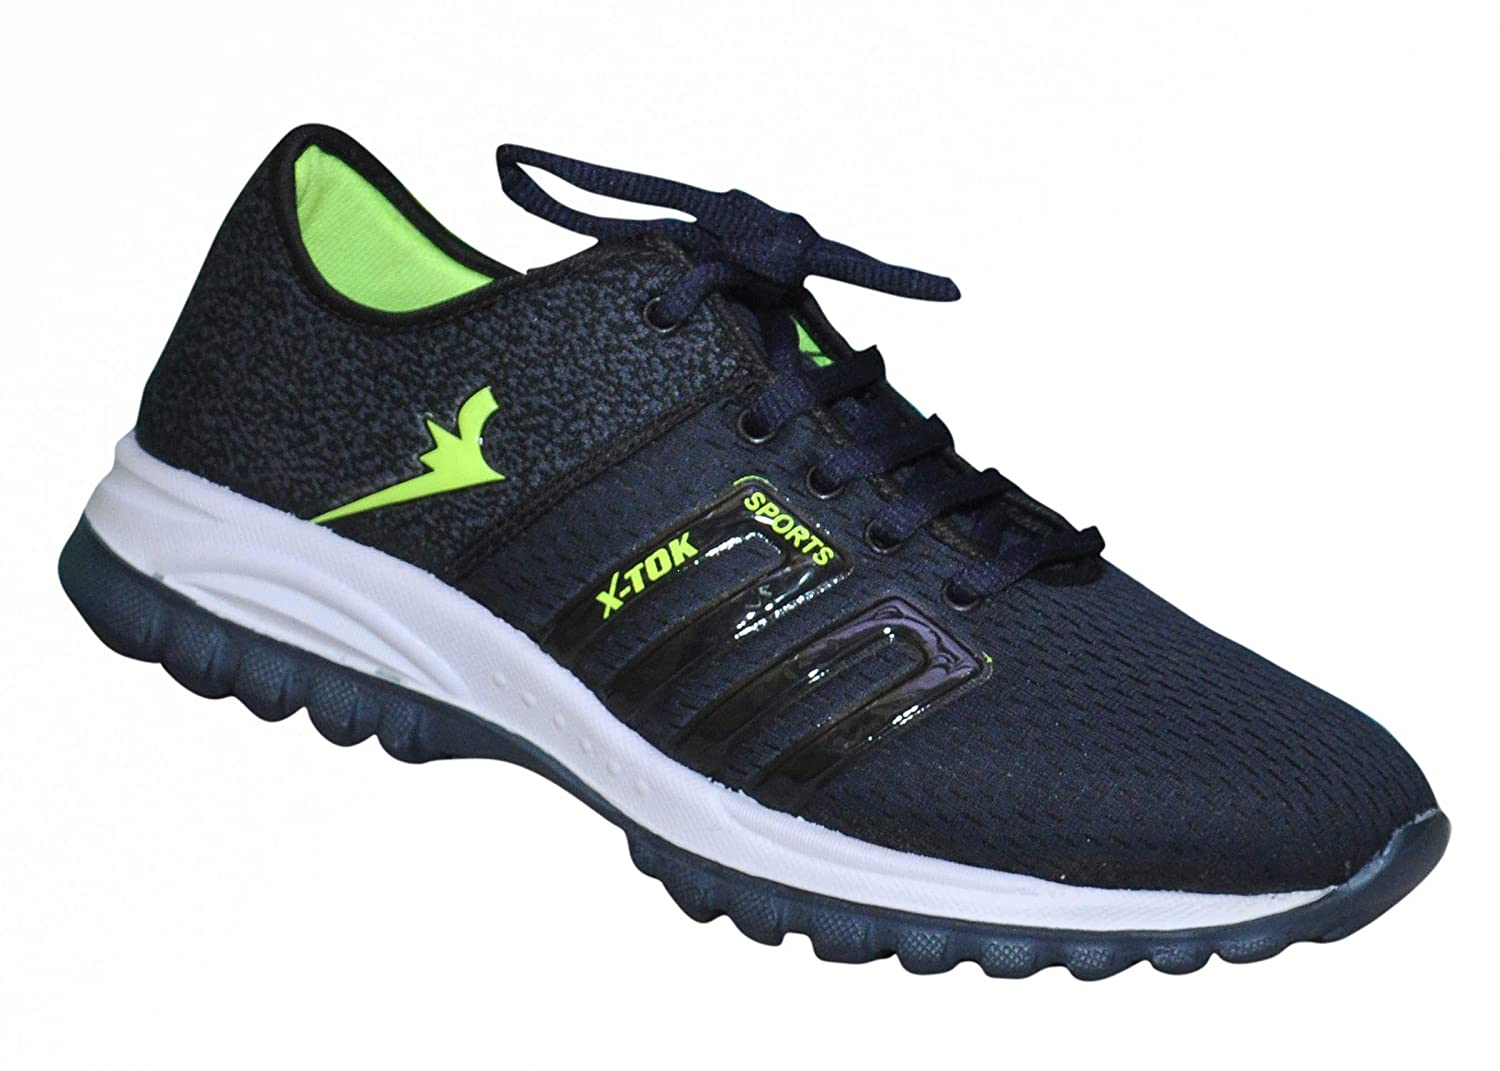 Buy JD 304 Running Shoes at Amazon.in